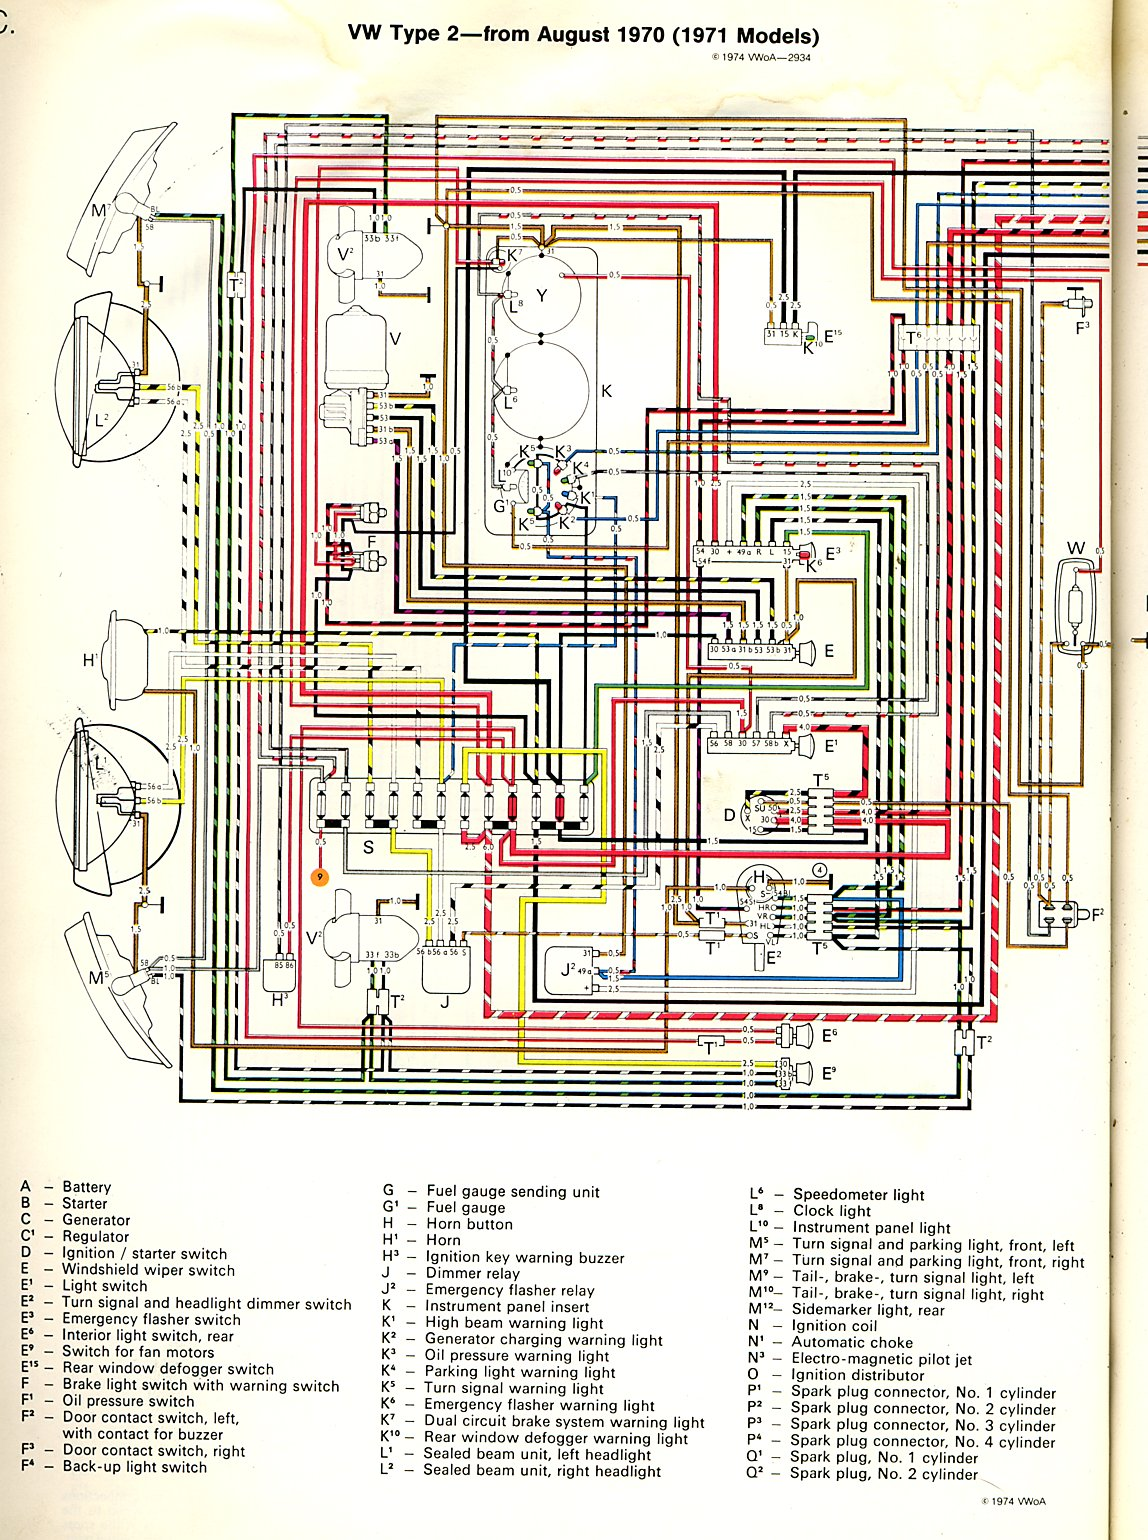 1976 Vw Wiring Diagram Type 2 Altinator Diagrams Schematic Data